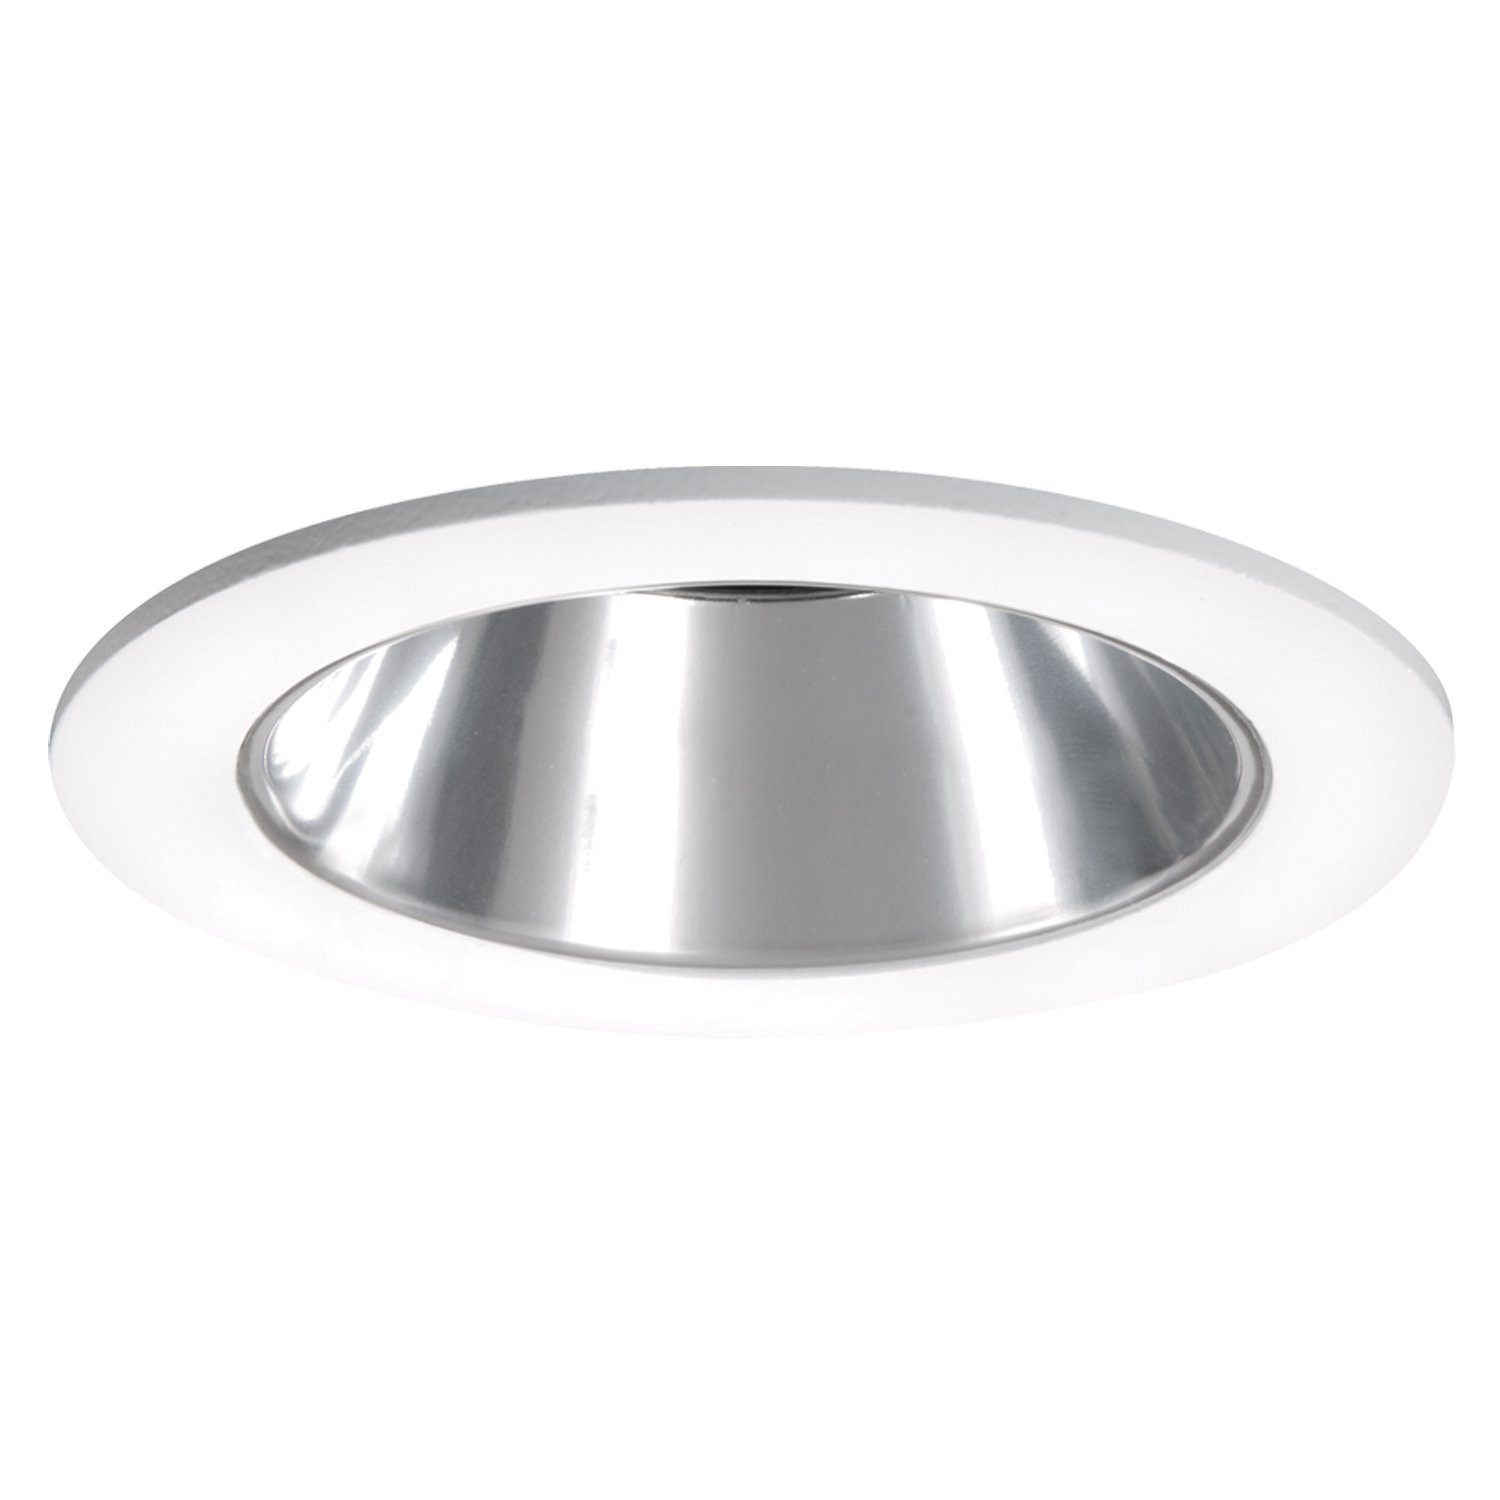 Halo 3004whc recessed lighting trim 3 line low voltage 35 degree status in stockships same day if ordered by 1pm pst halo 3004whc recessed lighting trims arubaitofo Choice Image